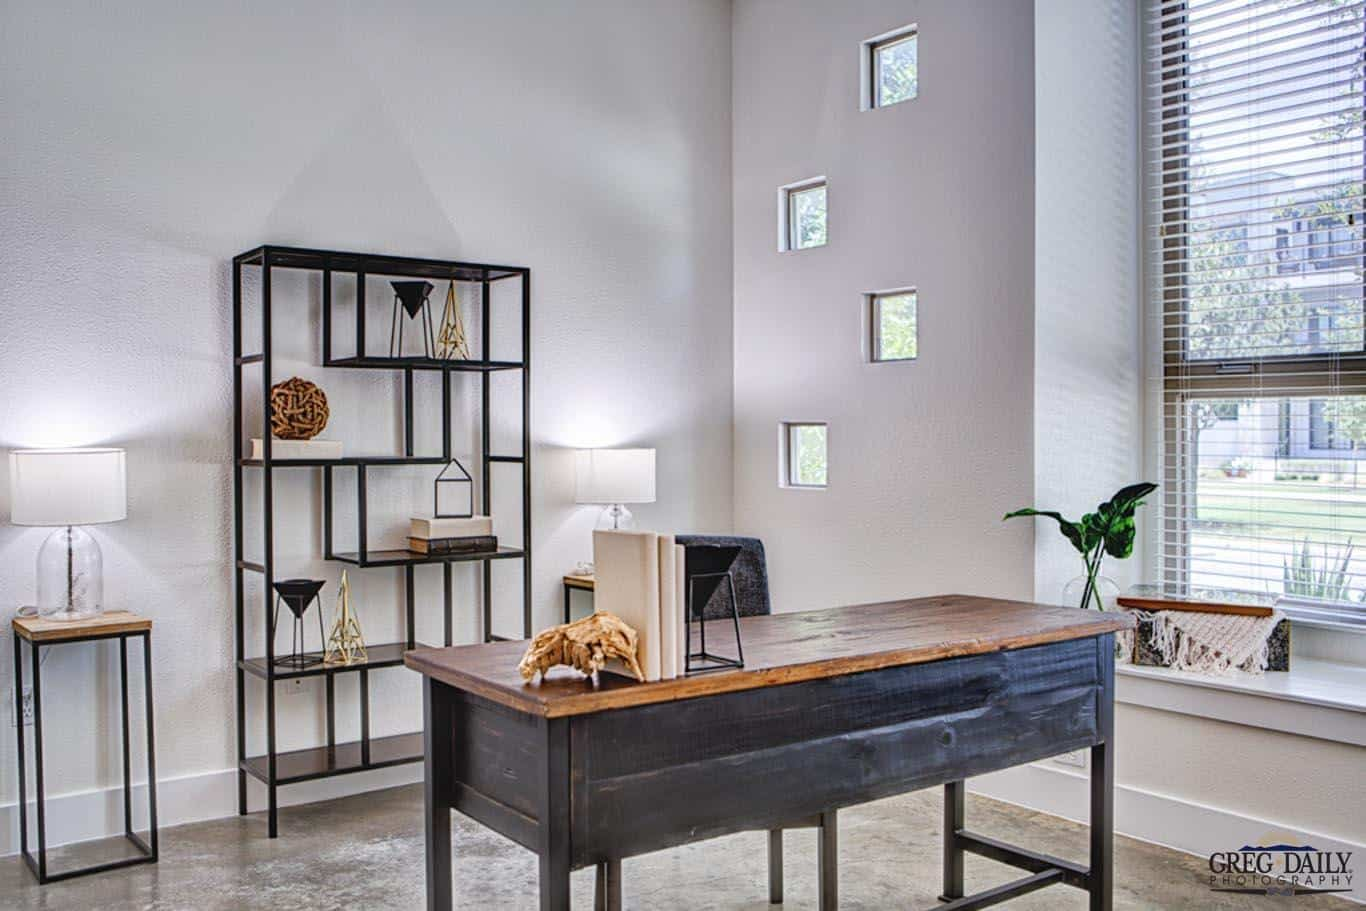 Photo of a desk in a nice house